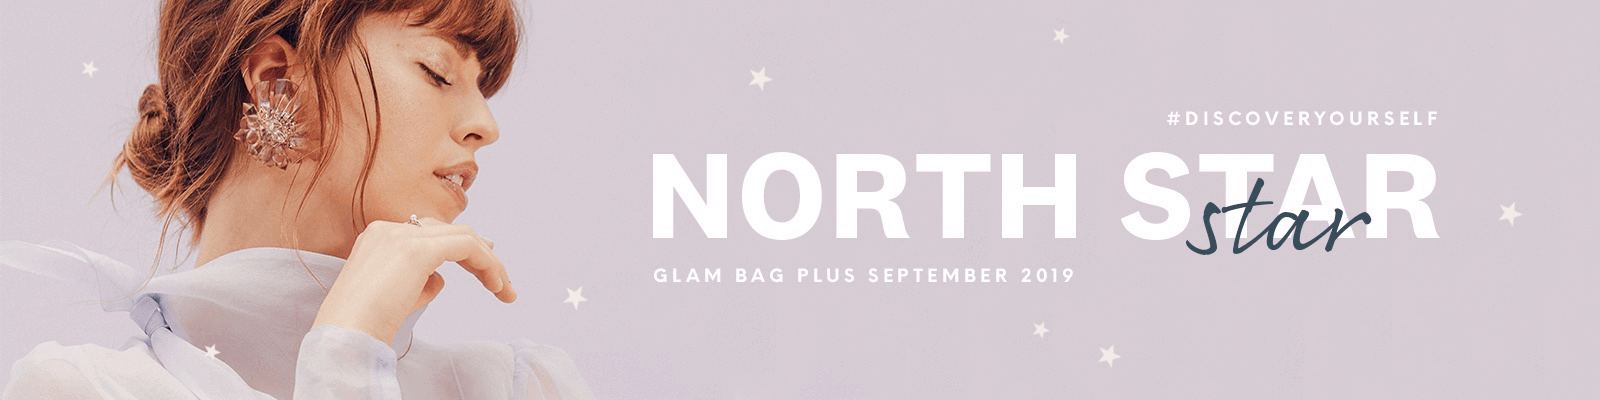 Ipsy September 2019 Glam Bag Plus Full Spoilers + Reveals Available Now!